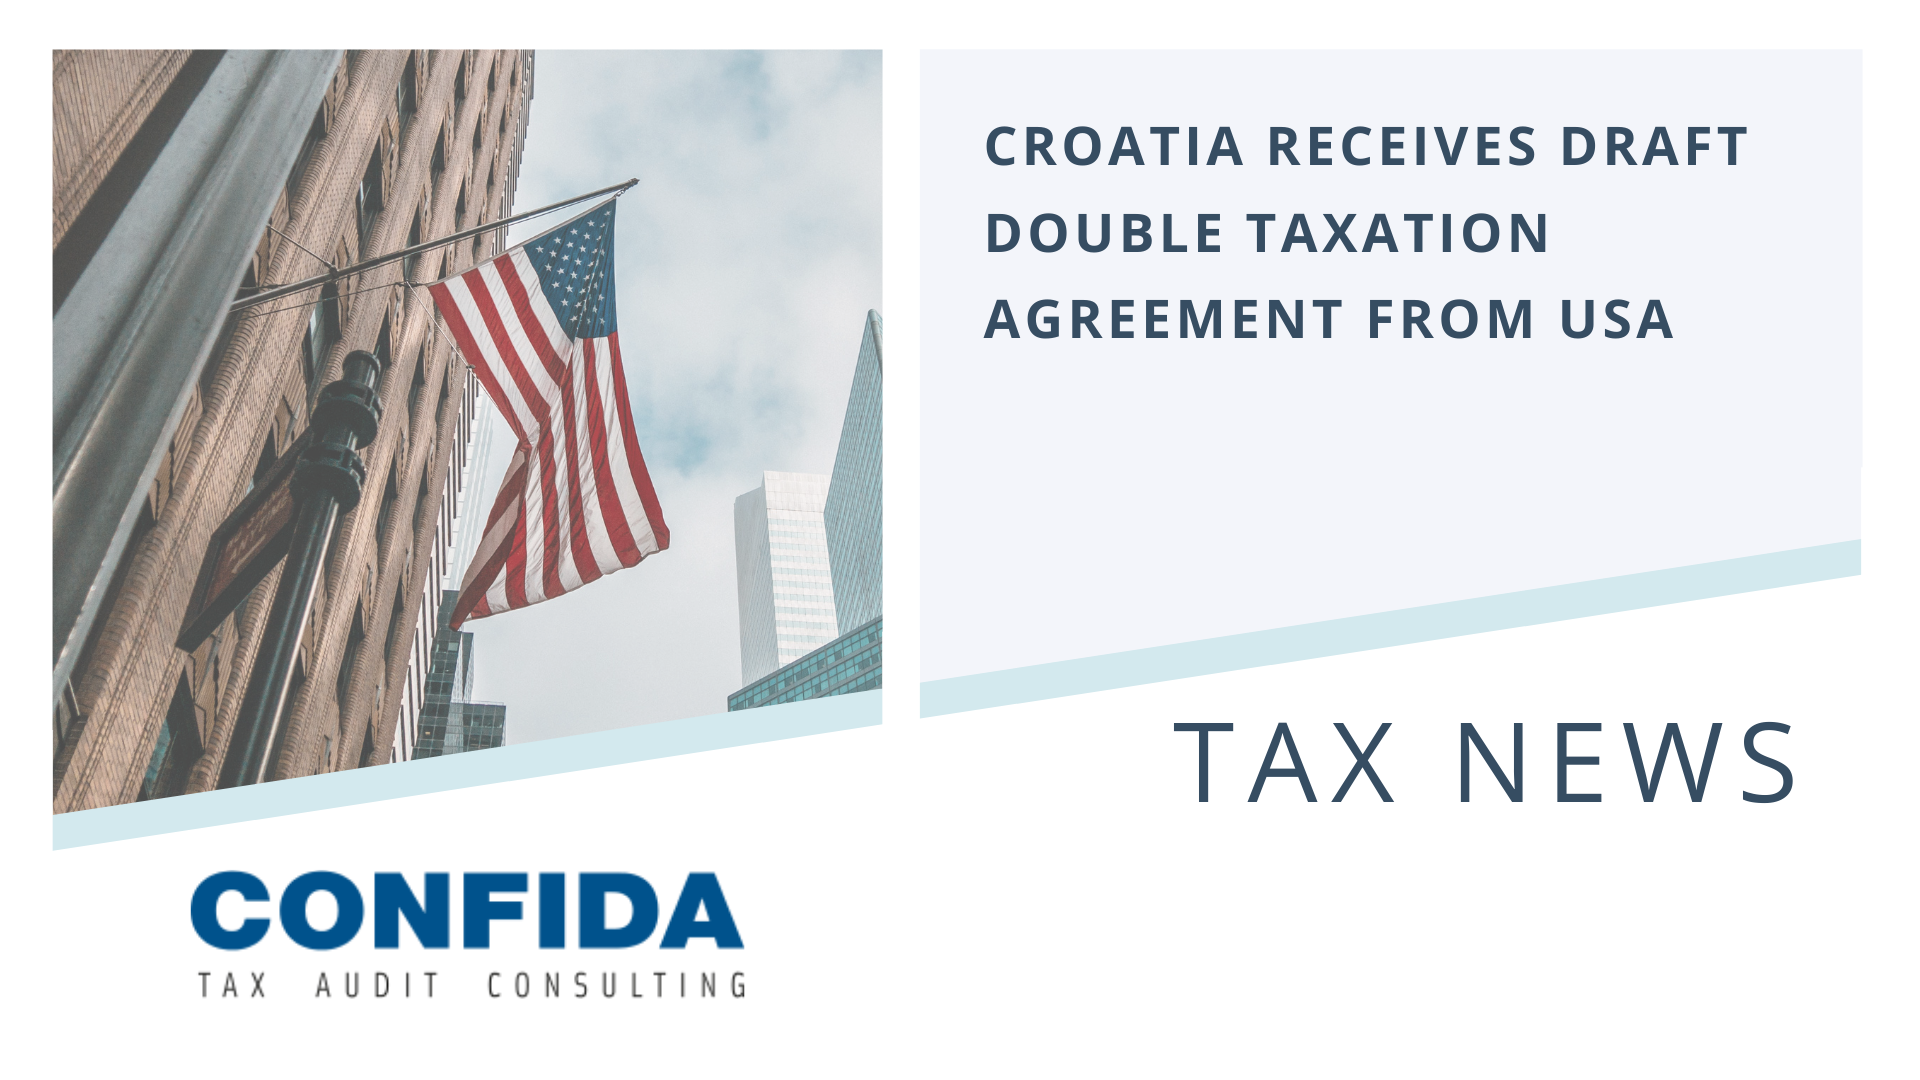 Croatia Receives Draft Double Taxation Agreement from USA